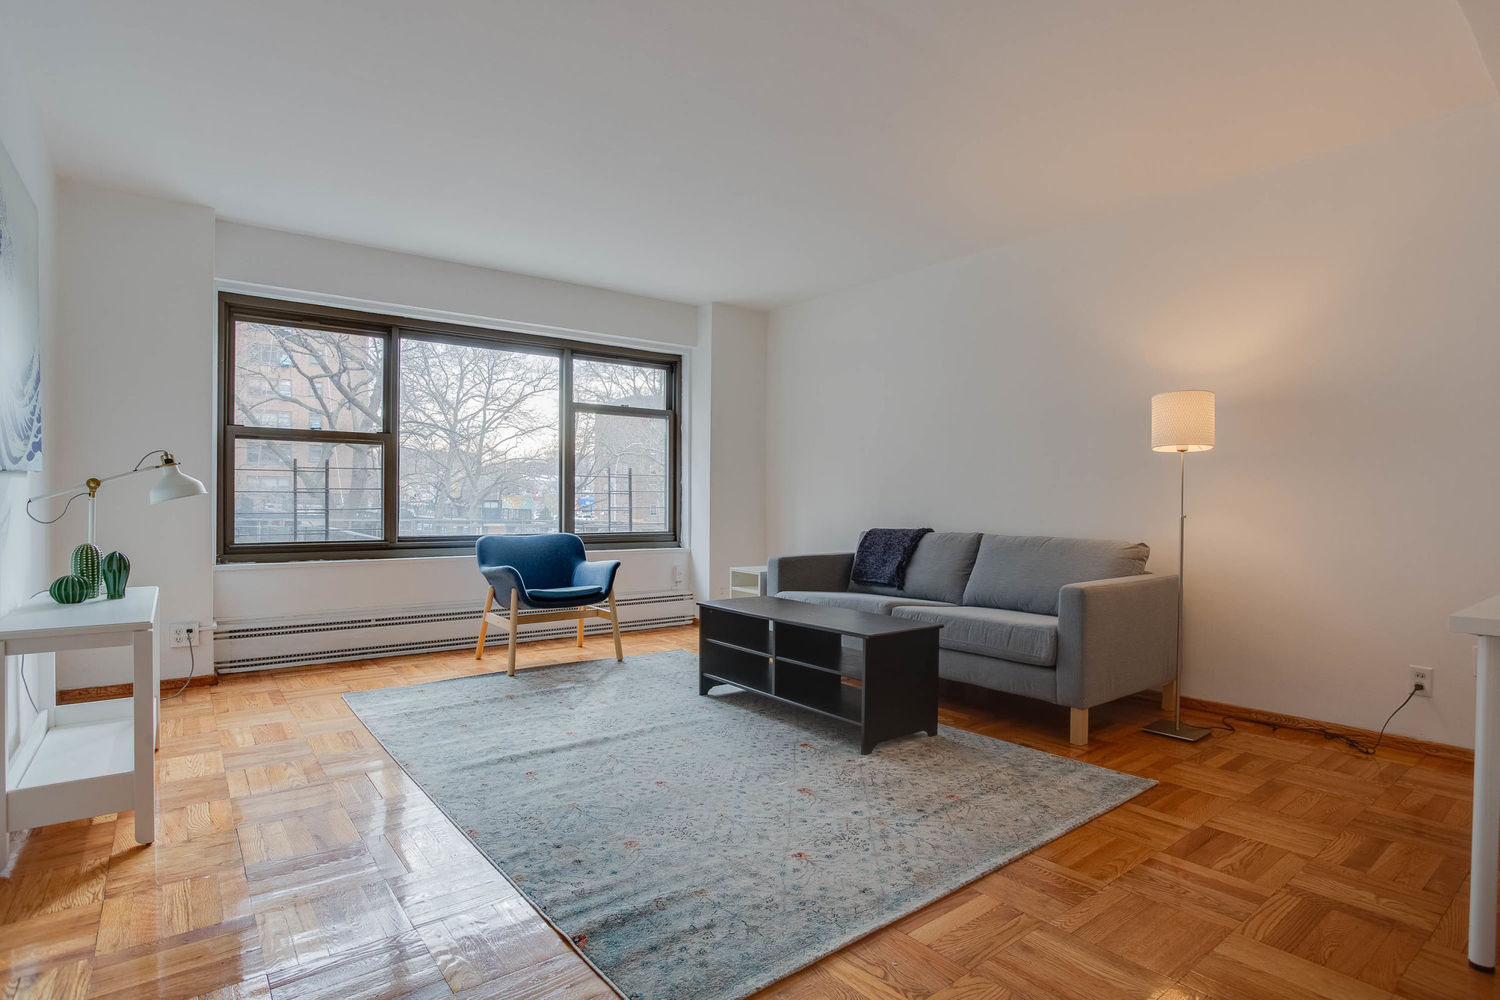 21-25 34th Ave, Unit 2C Queens, NY 11106